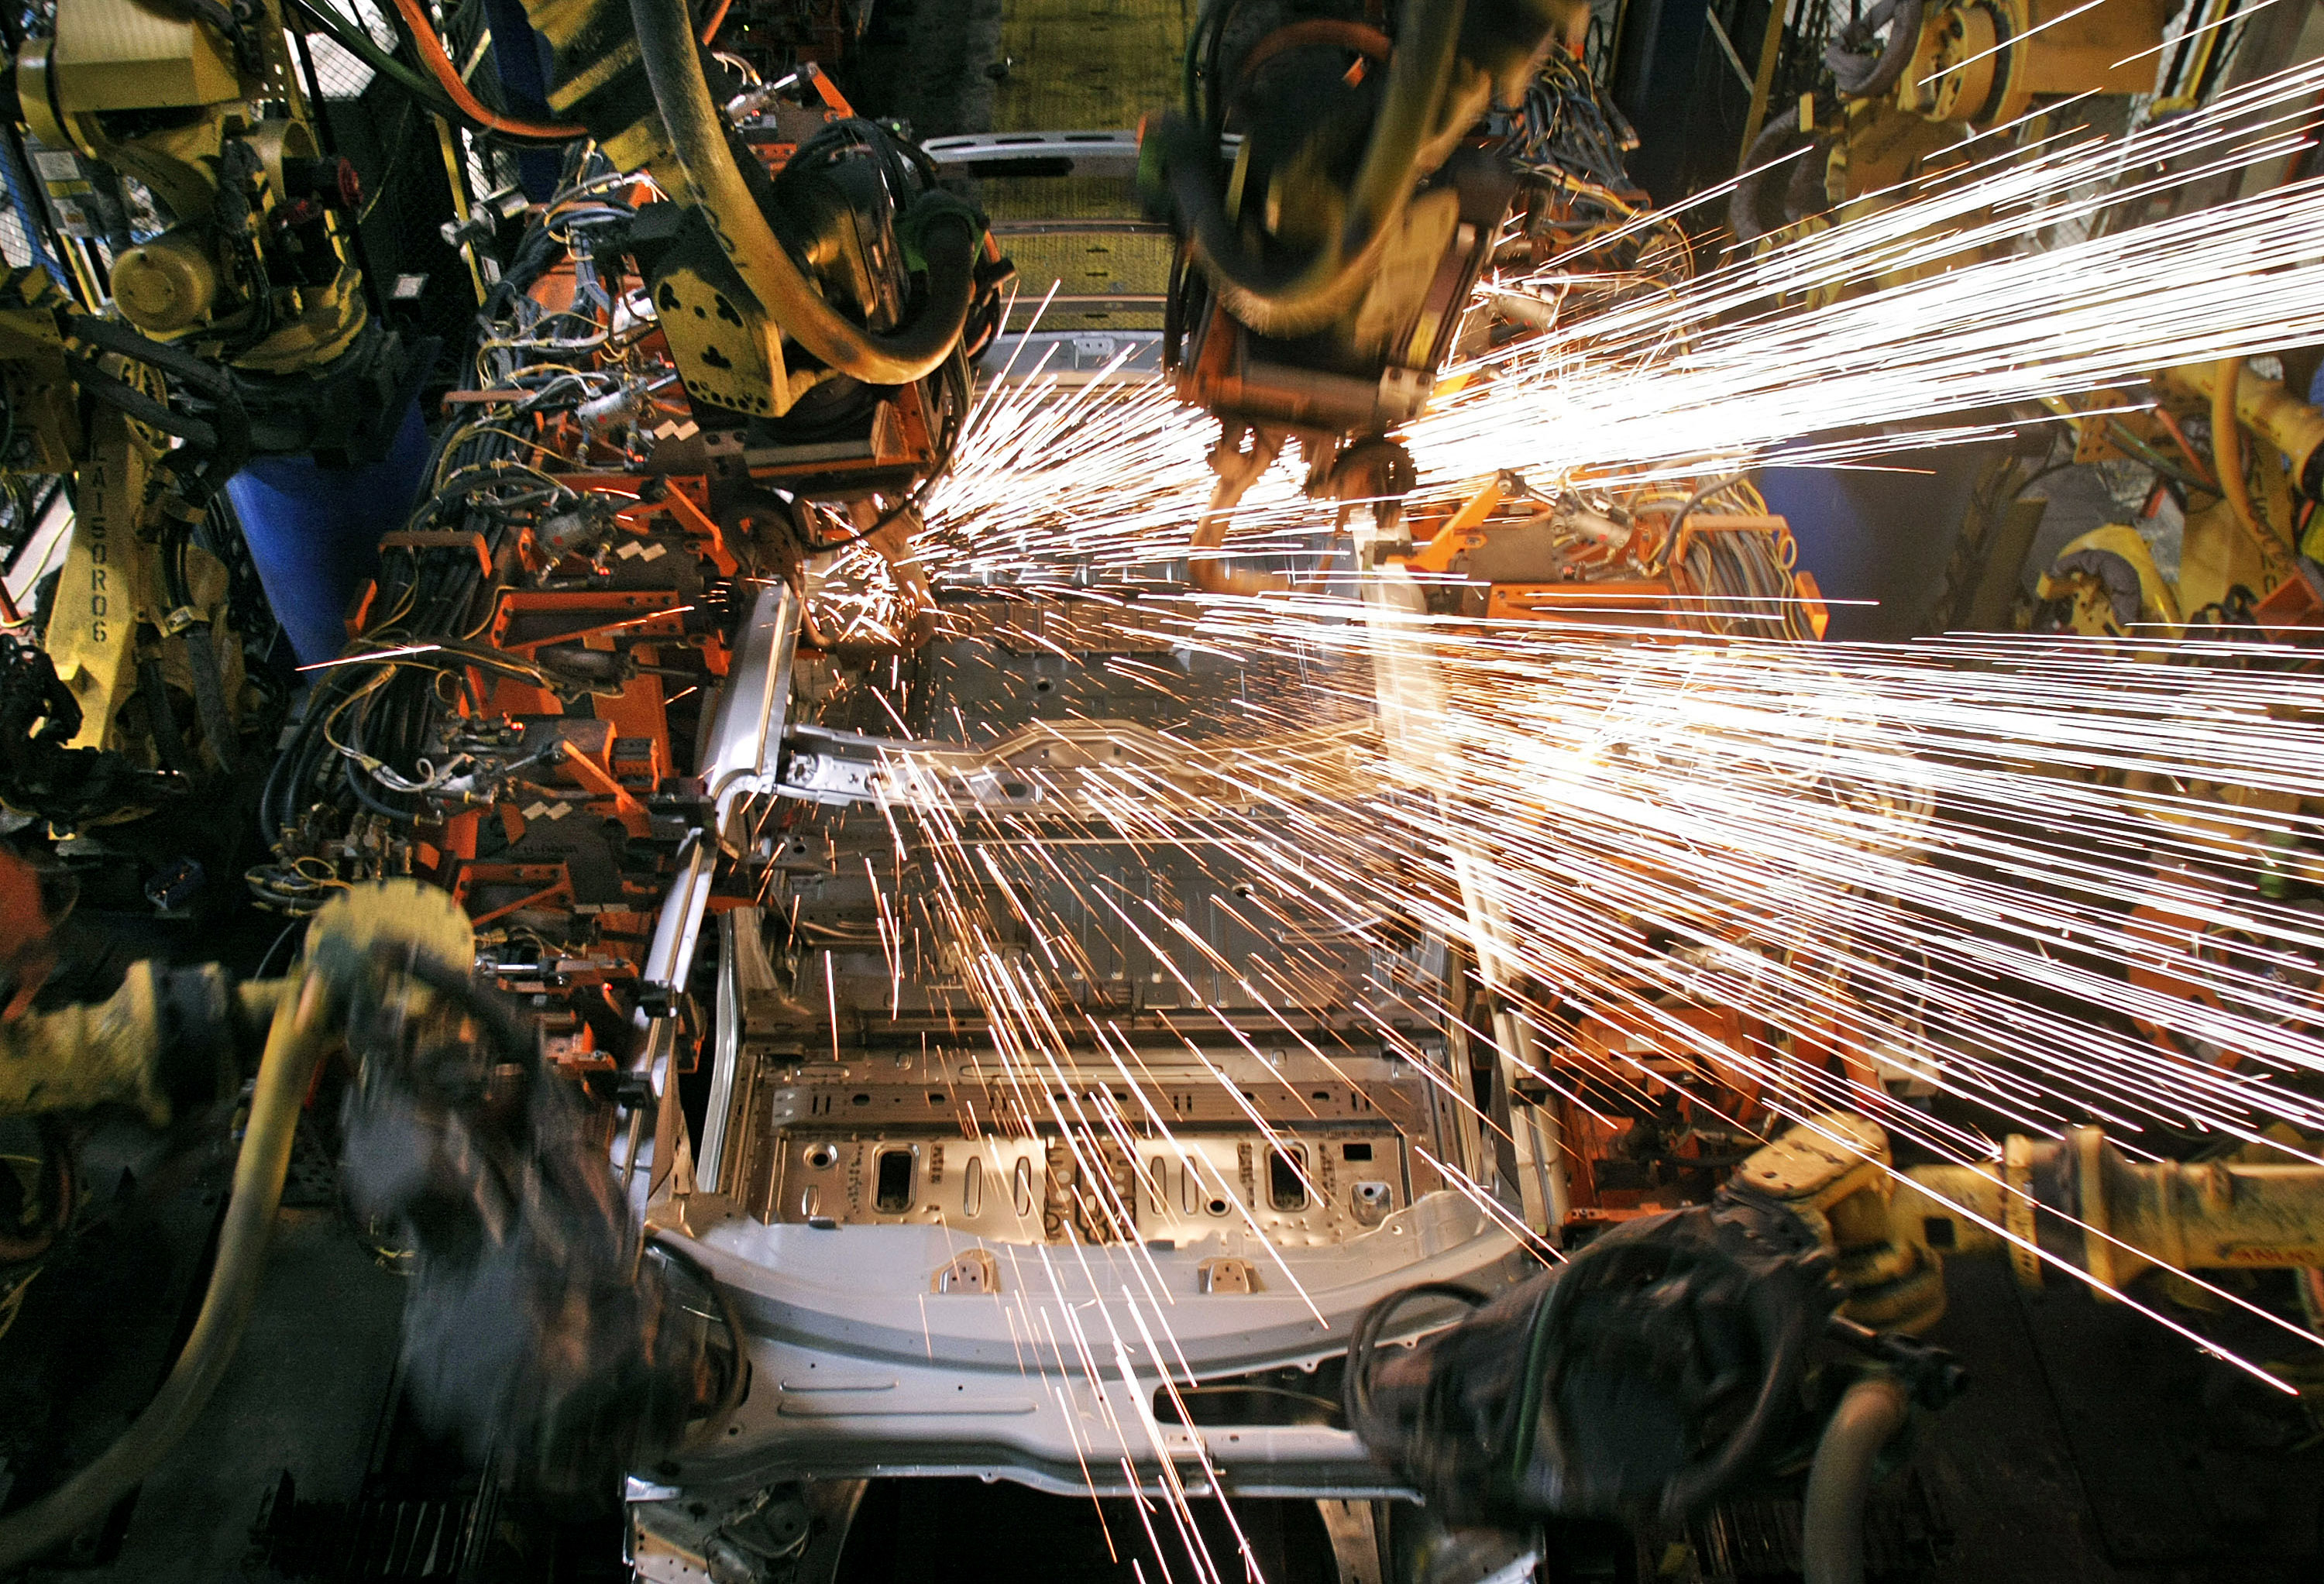 LANSING, MI - MARCH 10: A vehicle is welded by robot arms as it goes through the assembly line at the General Motors Lansing Delta Township Assembly Plant March 10, 2010 in Lansing, Michigan. The Delta plant has more than 3,000 workers on two shifts and is expected to add a third shift of 900-1,000 workers in April. The plant produces the Buick Enclave, Chevrolet Traverse, and GMC Acadia crossover SUVs. (Photo by Bill Pugliano/Getty Images)